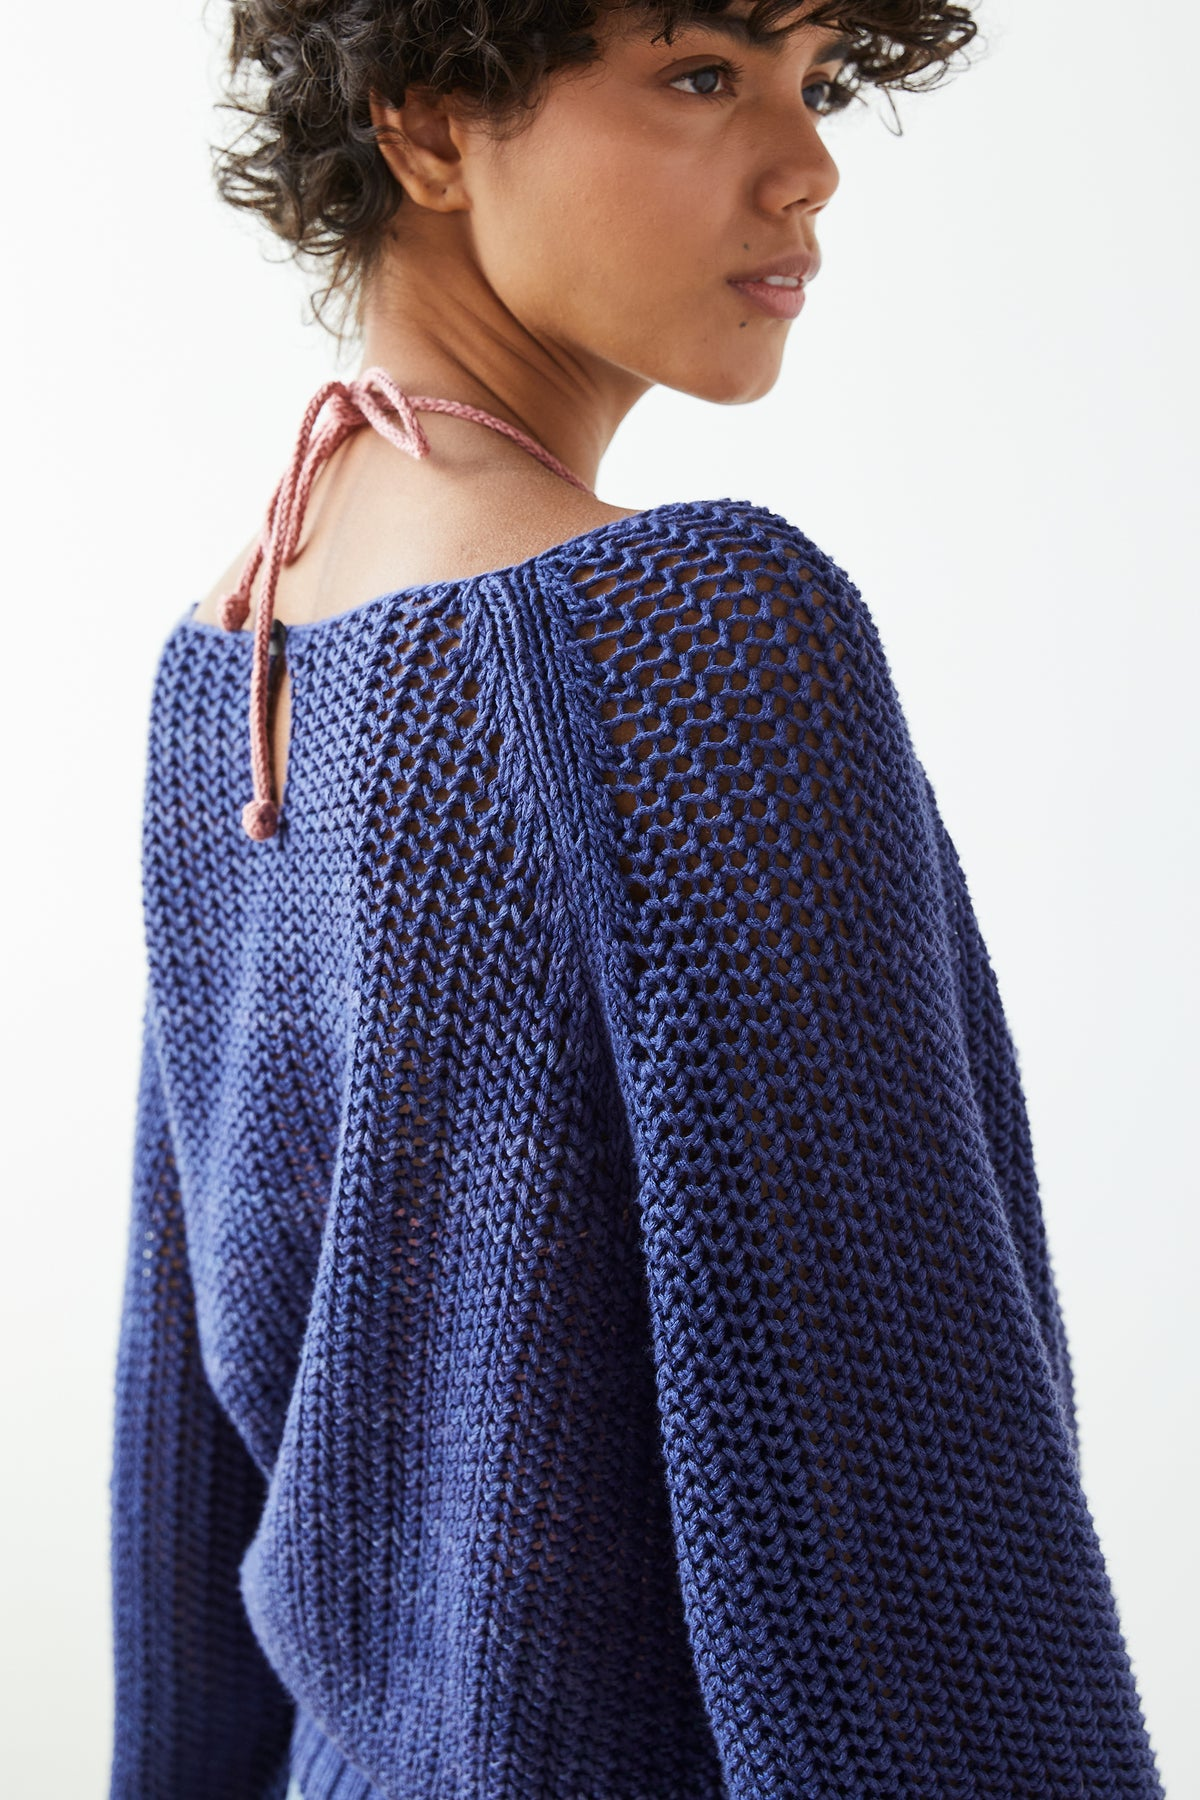 Adult Net Stitch Sweater - Blue Violet